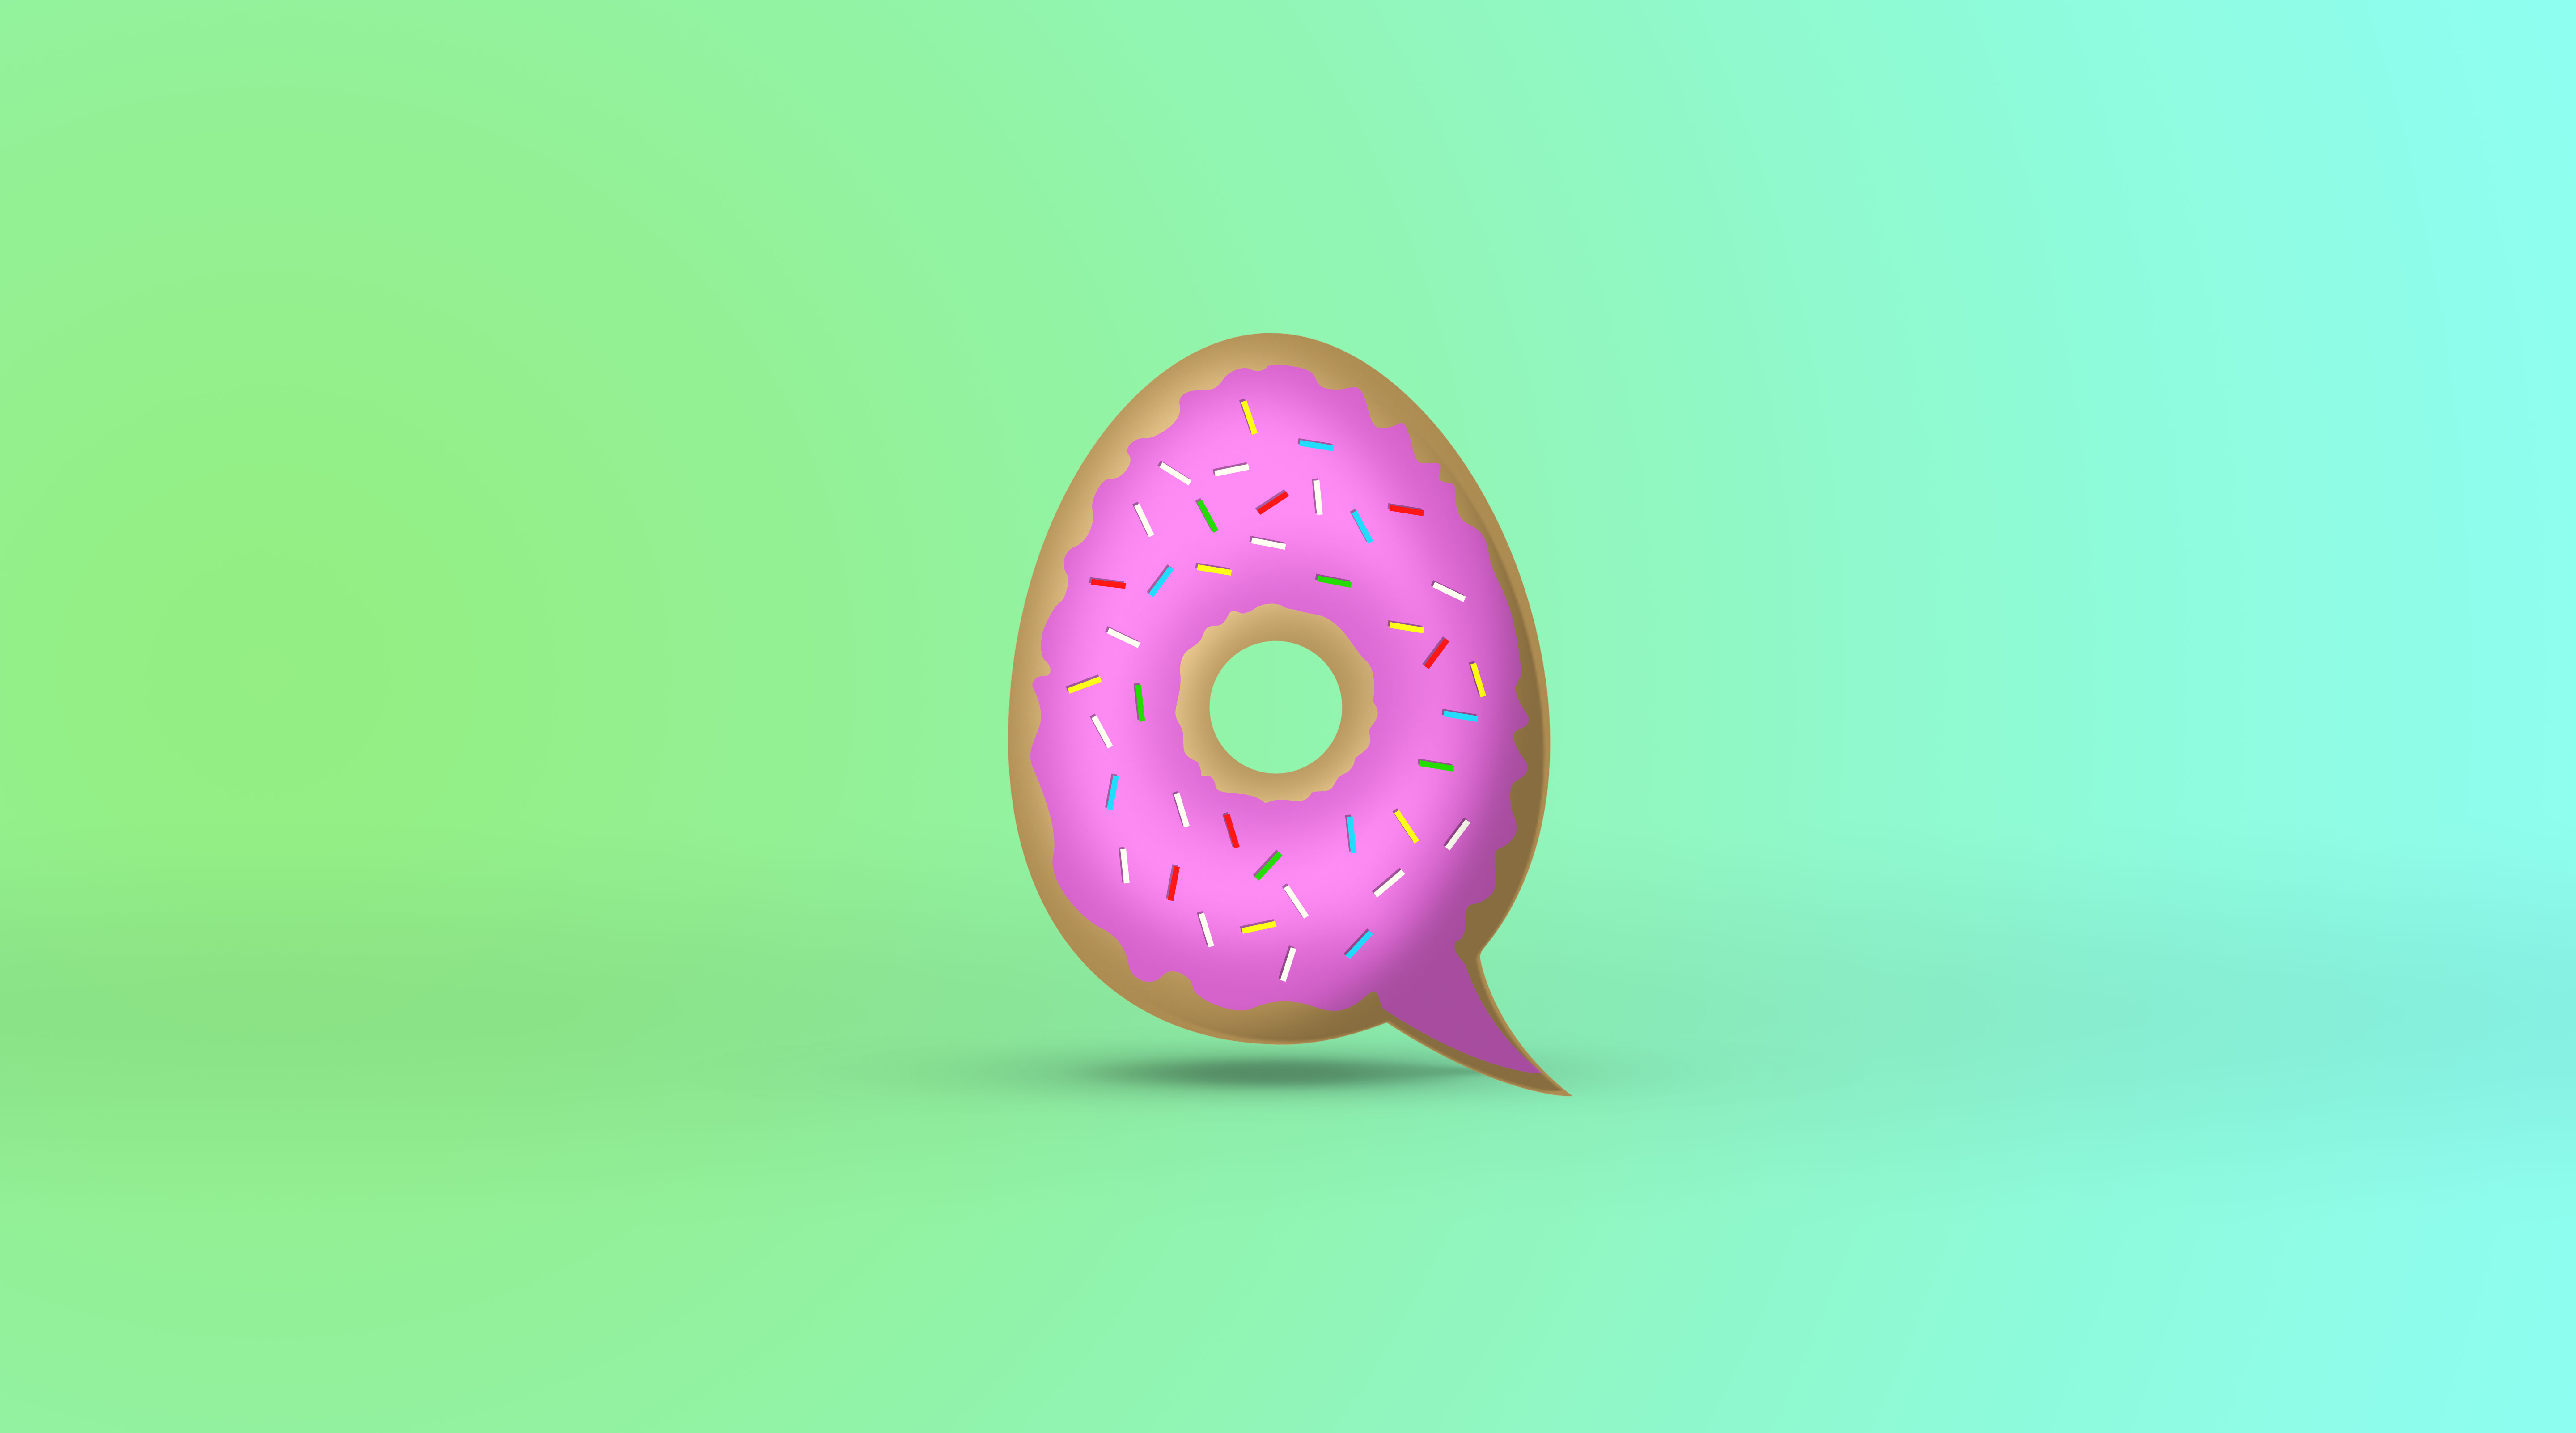 Donut-Time!